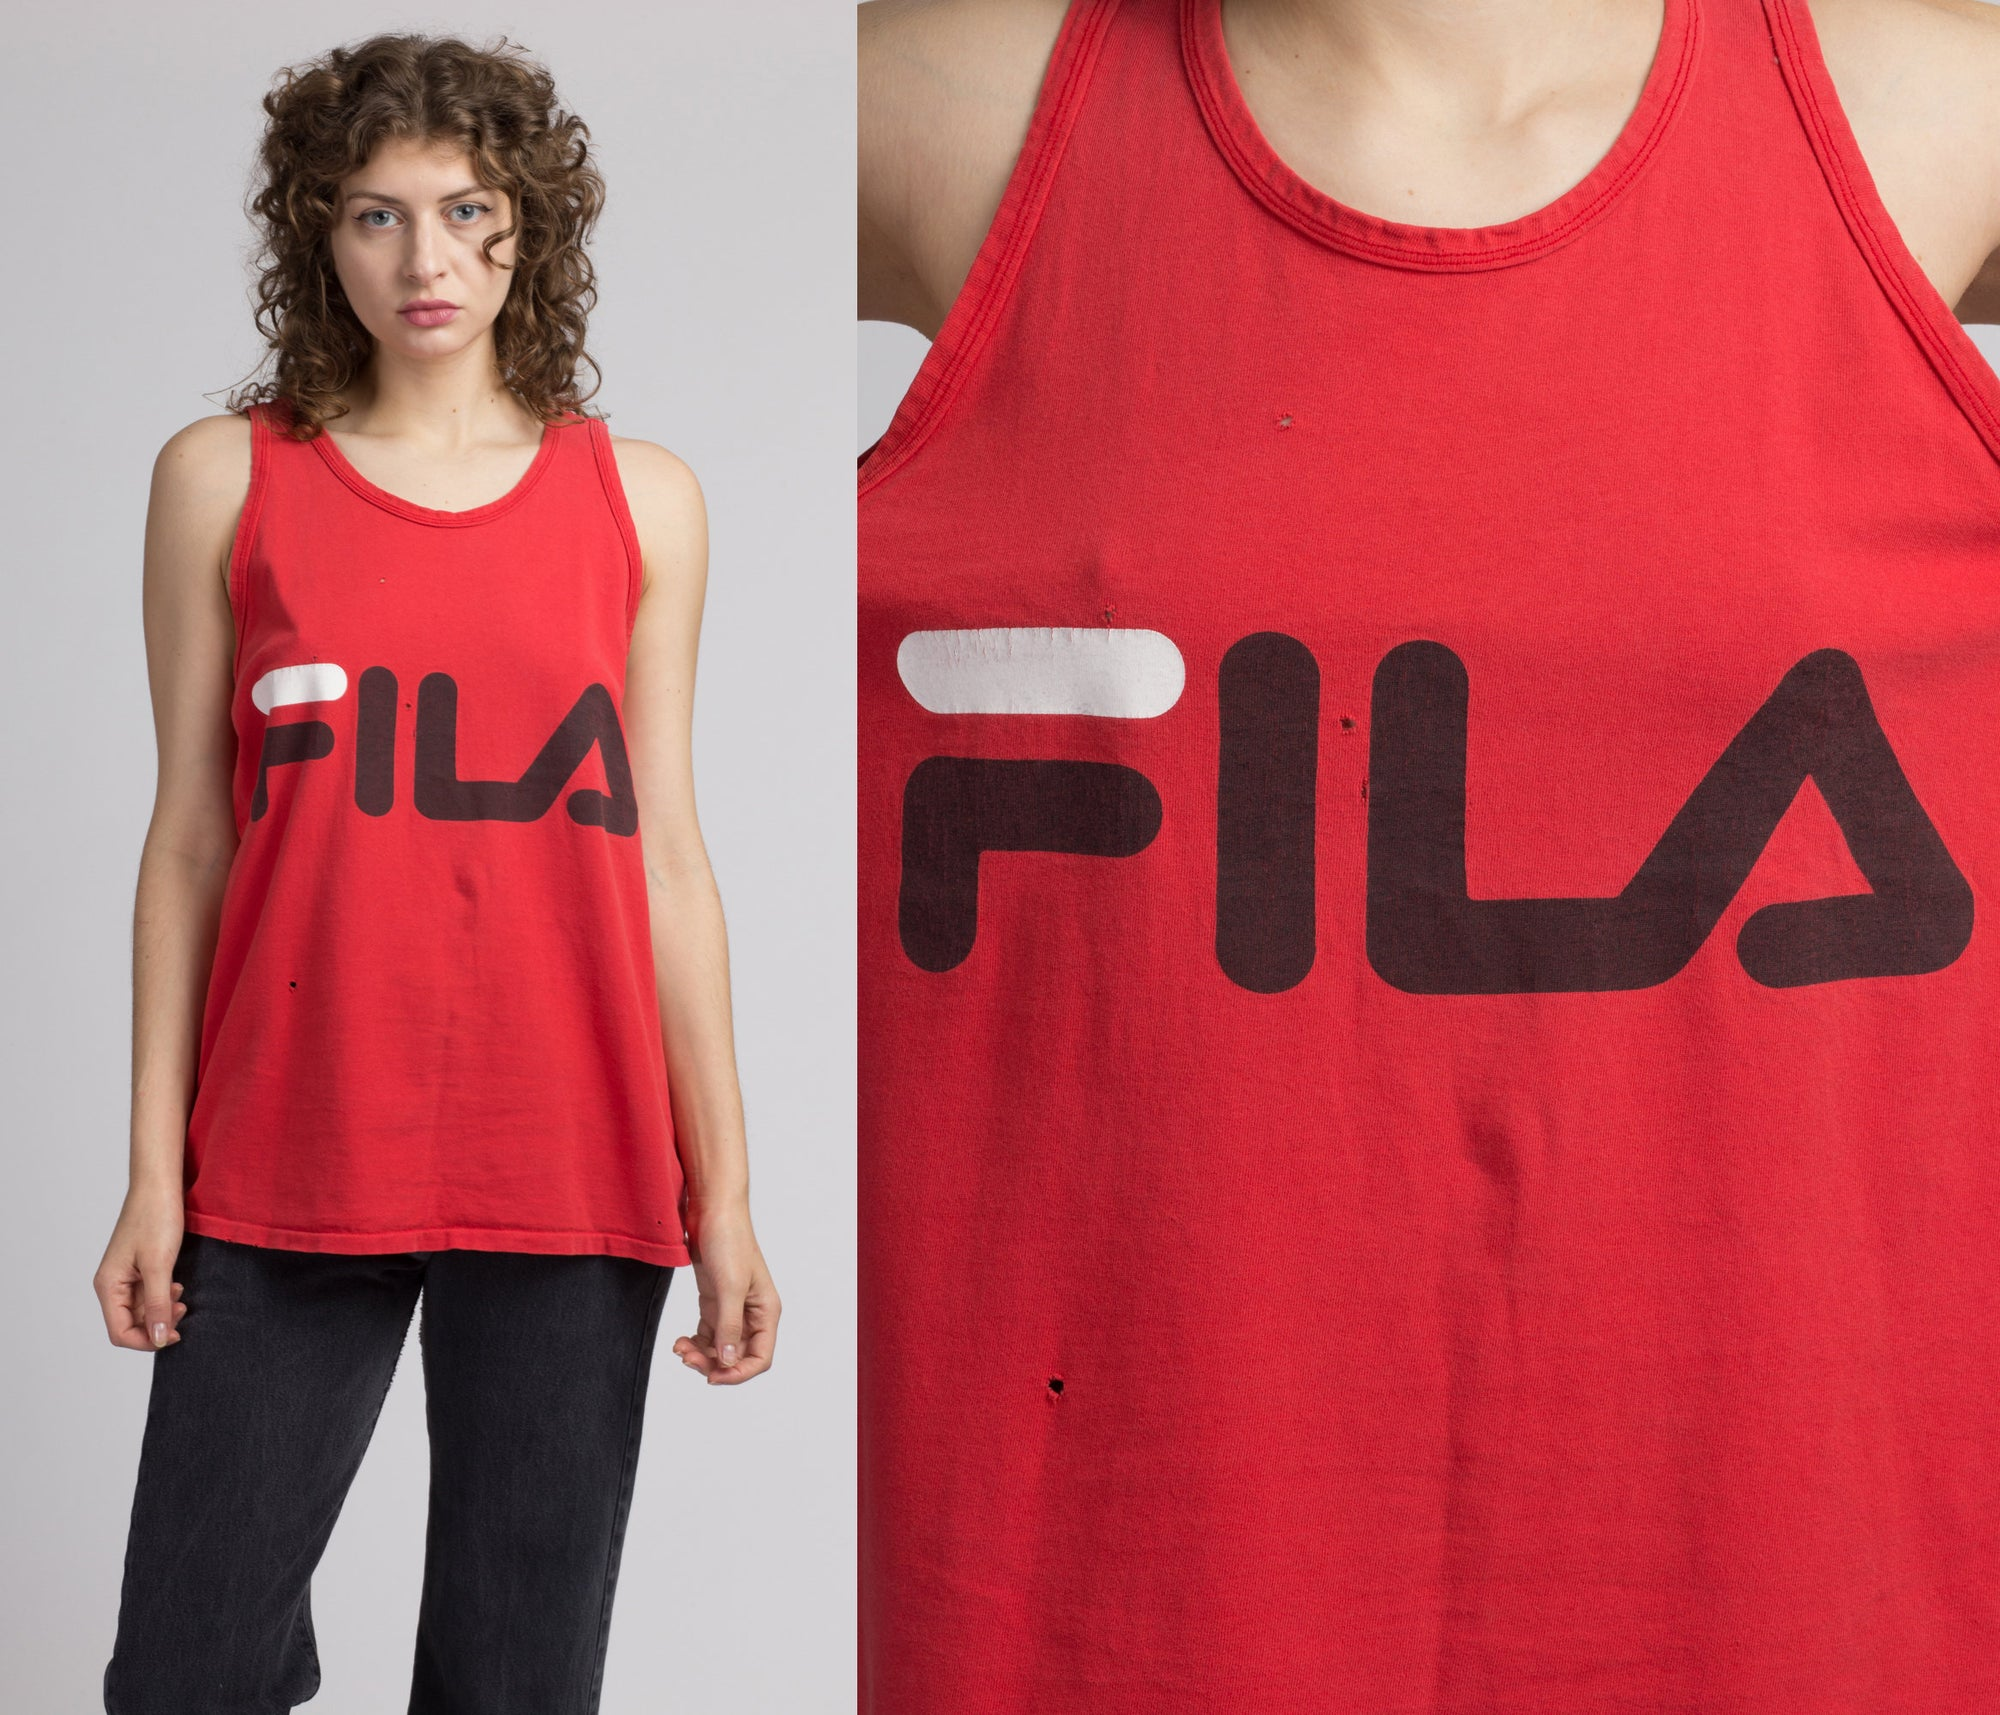 90s Fila Logo Tank Top - Men's Medium